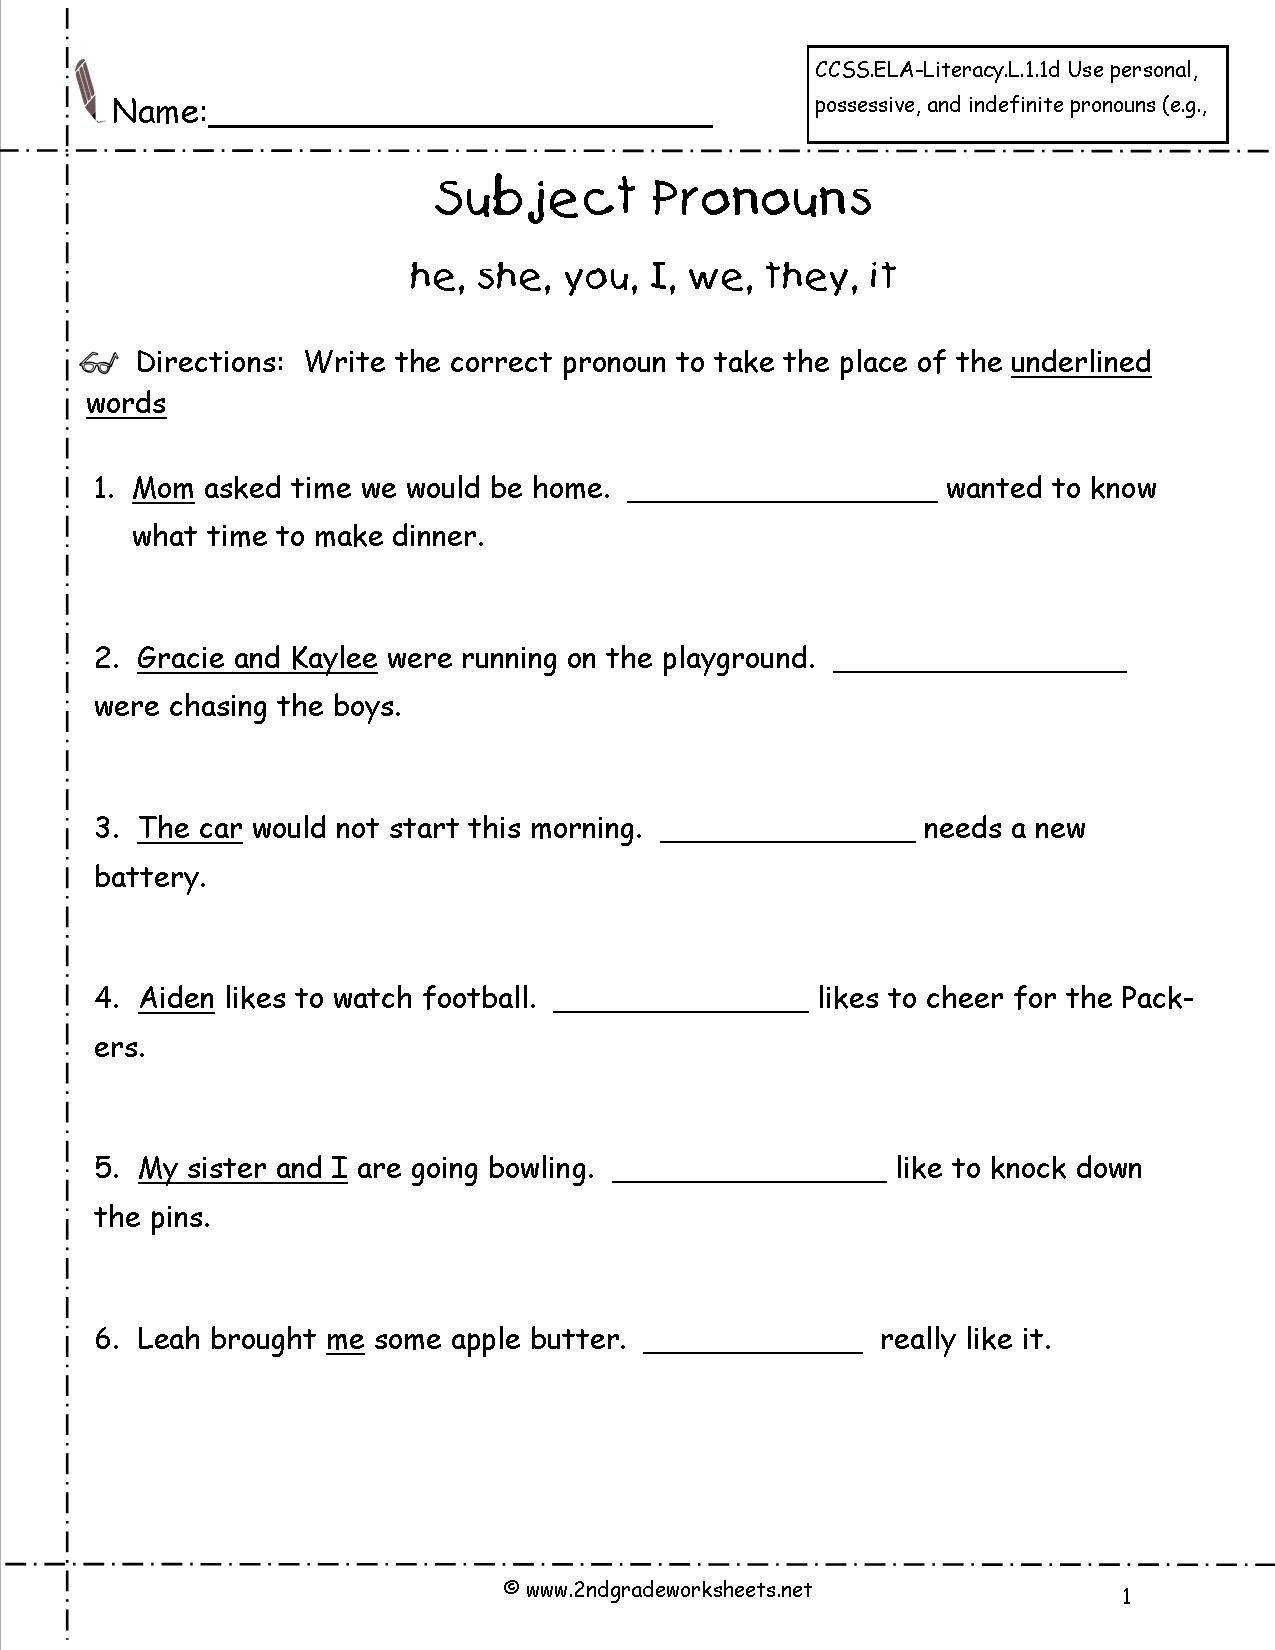 Pronoun Worksheets for 2nd Graders Wonders Second Grade Unit Five Week E Printouts